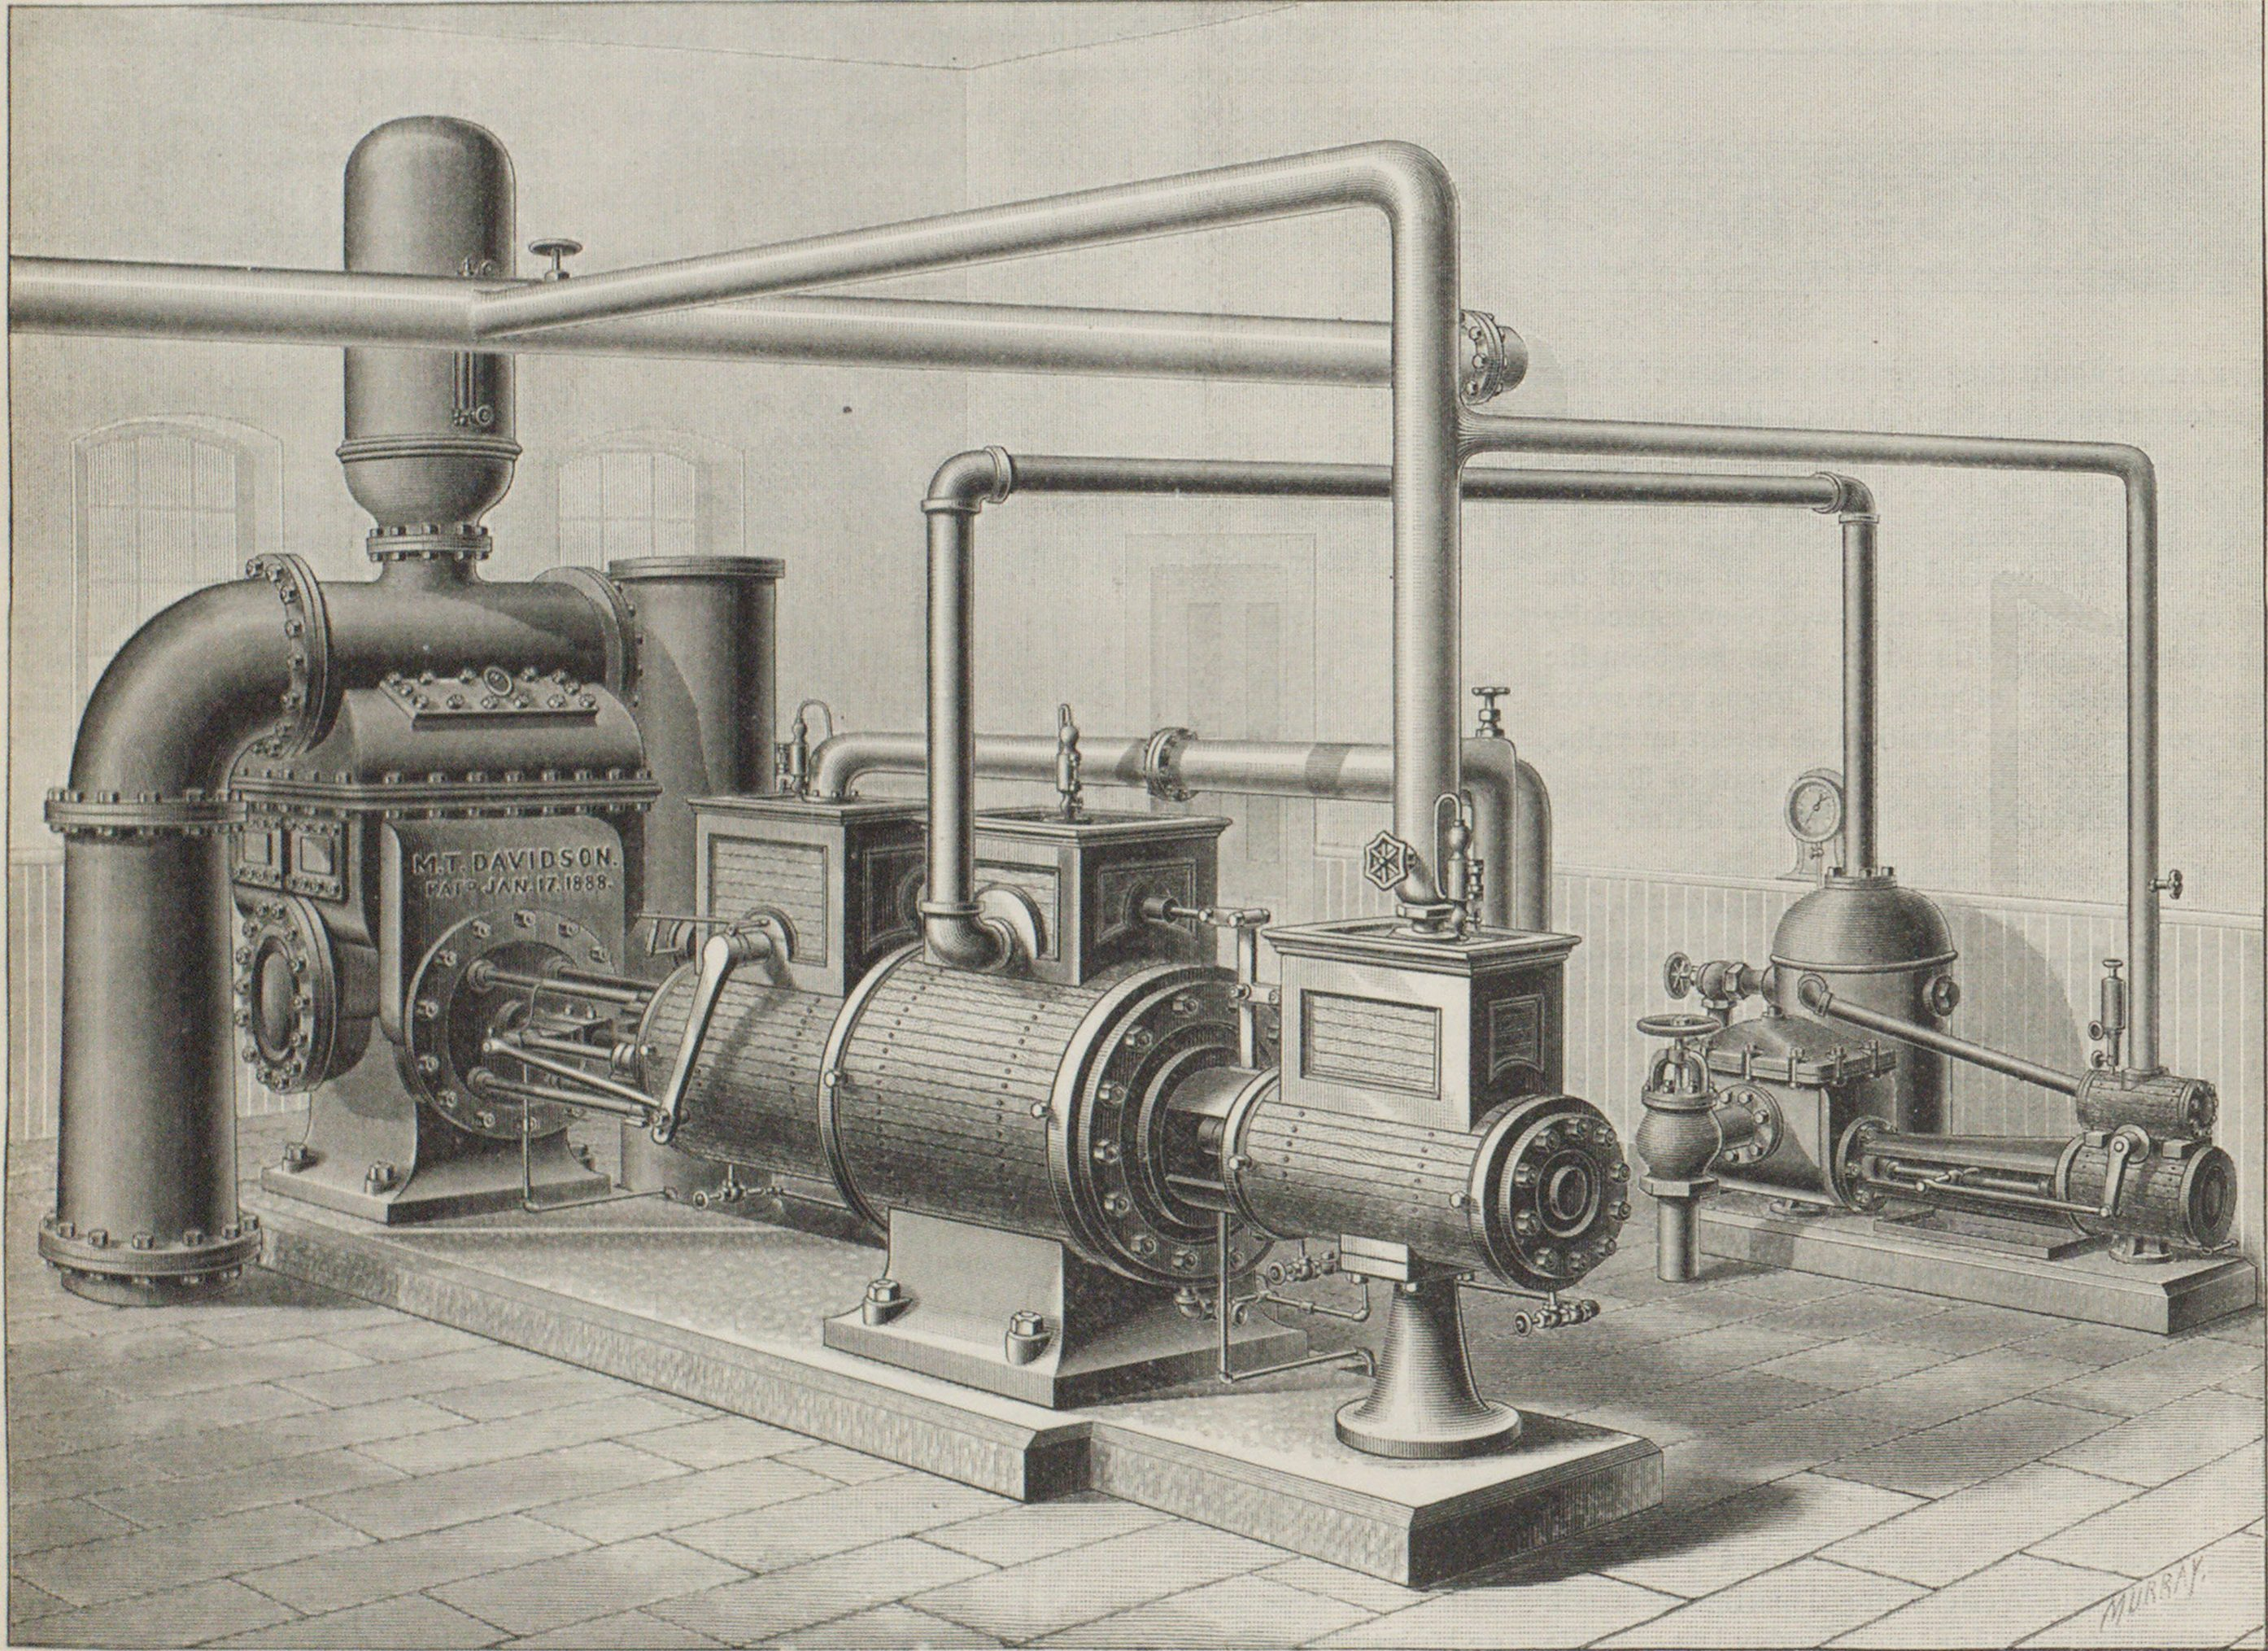 DAVIDSON PUMPING ENGINE, BROOKLYN WATER-WORKS.